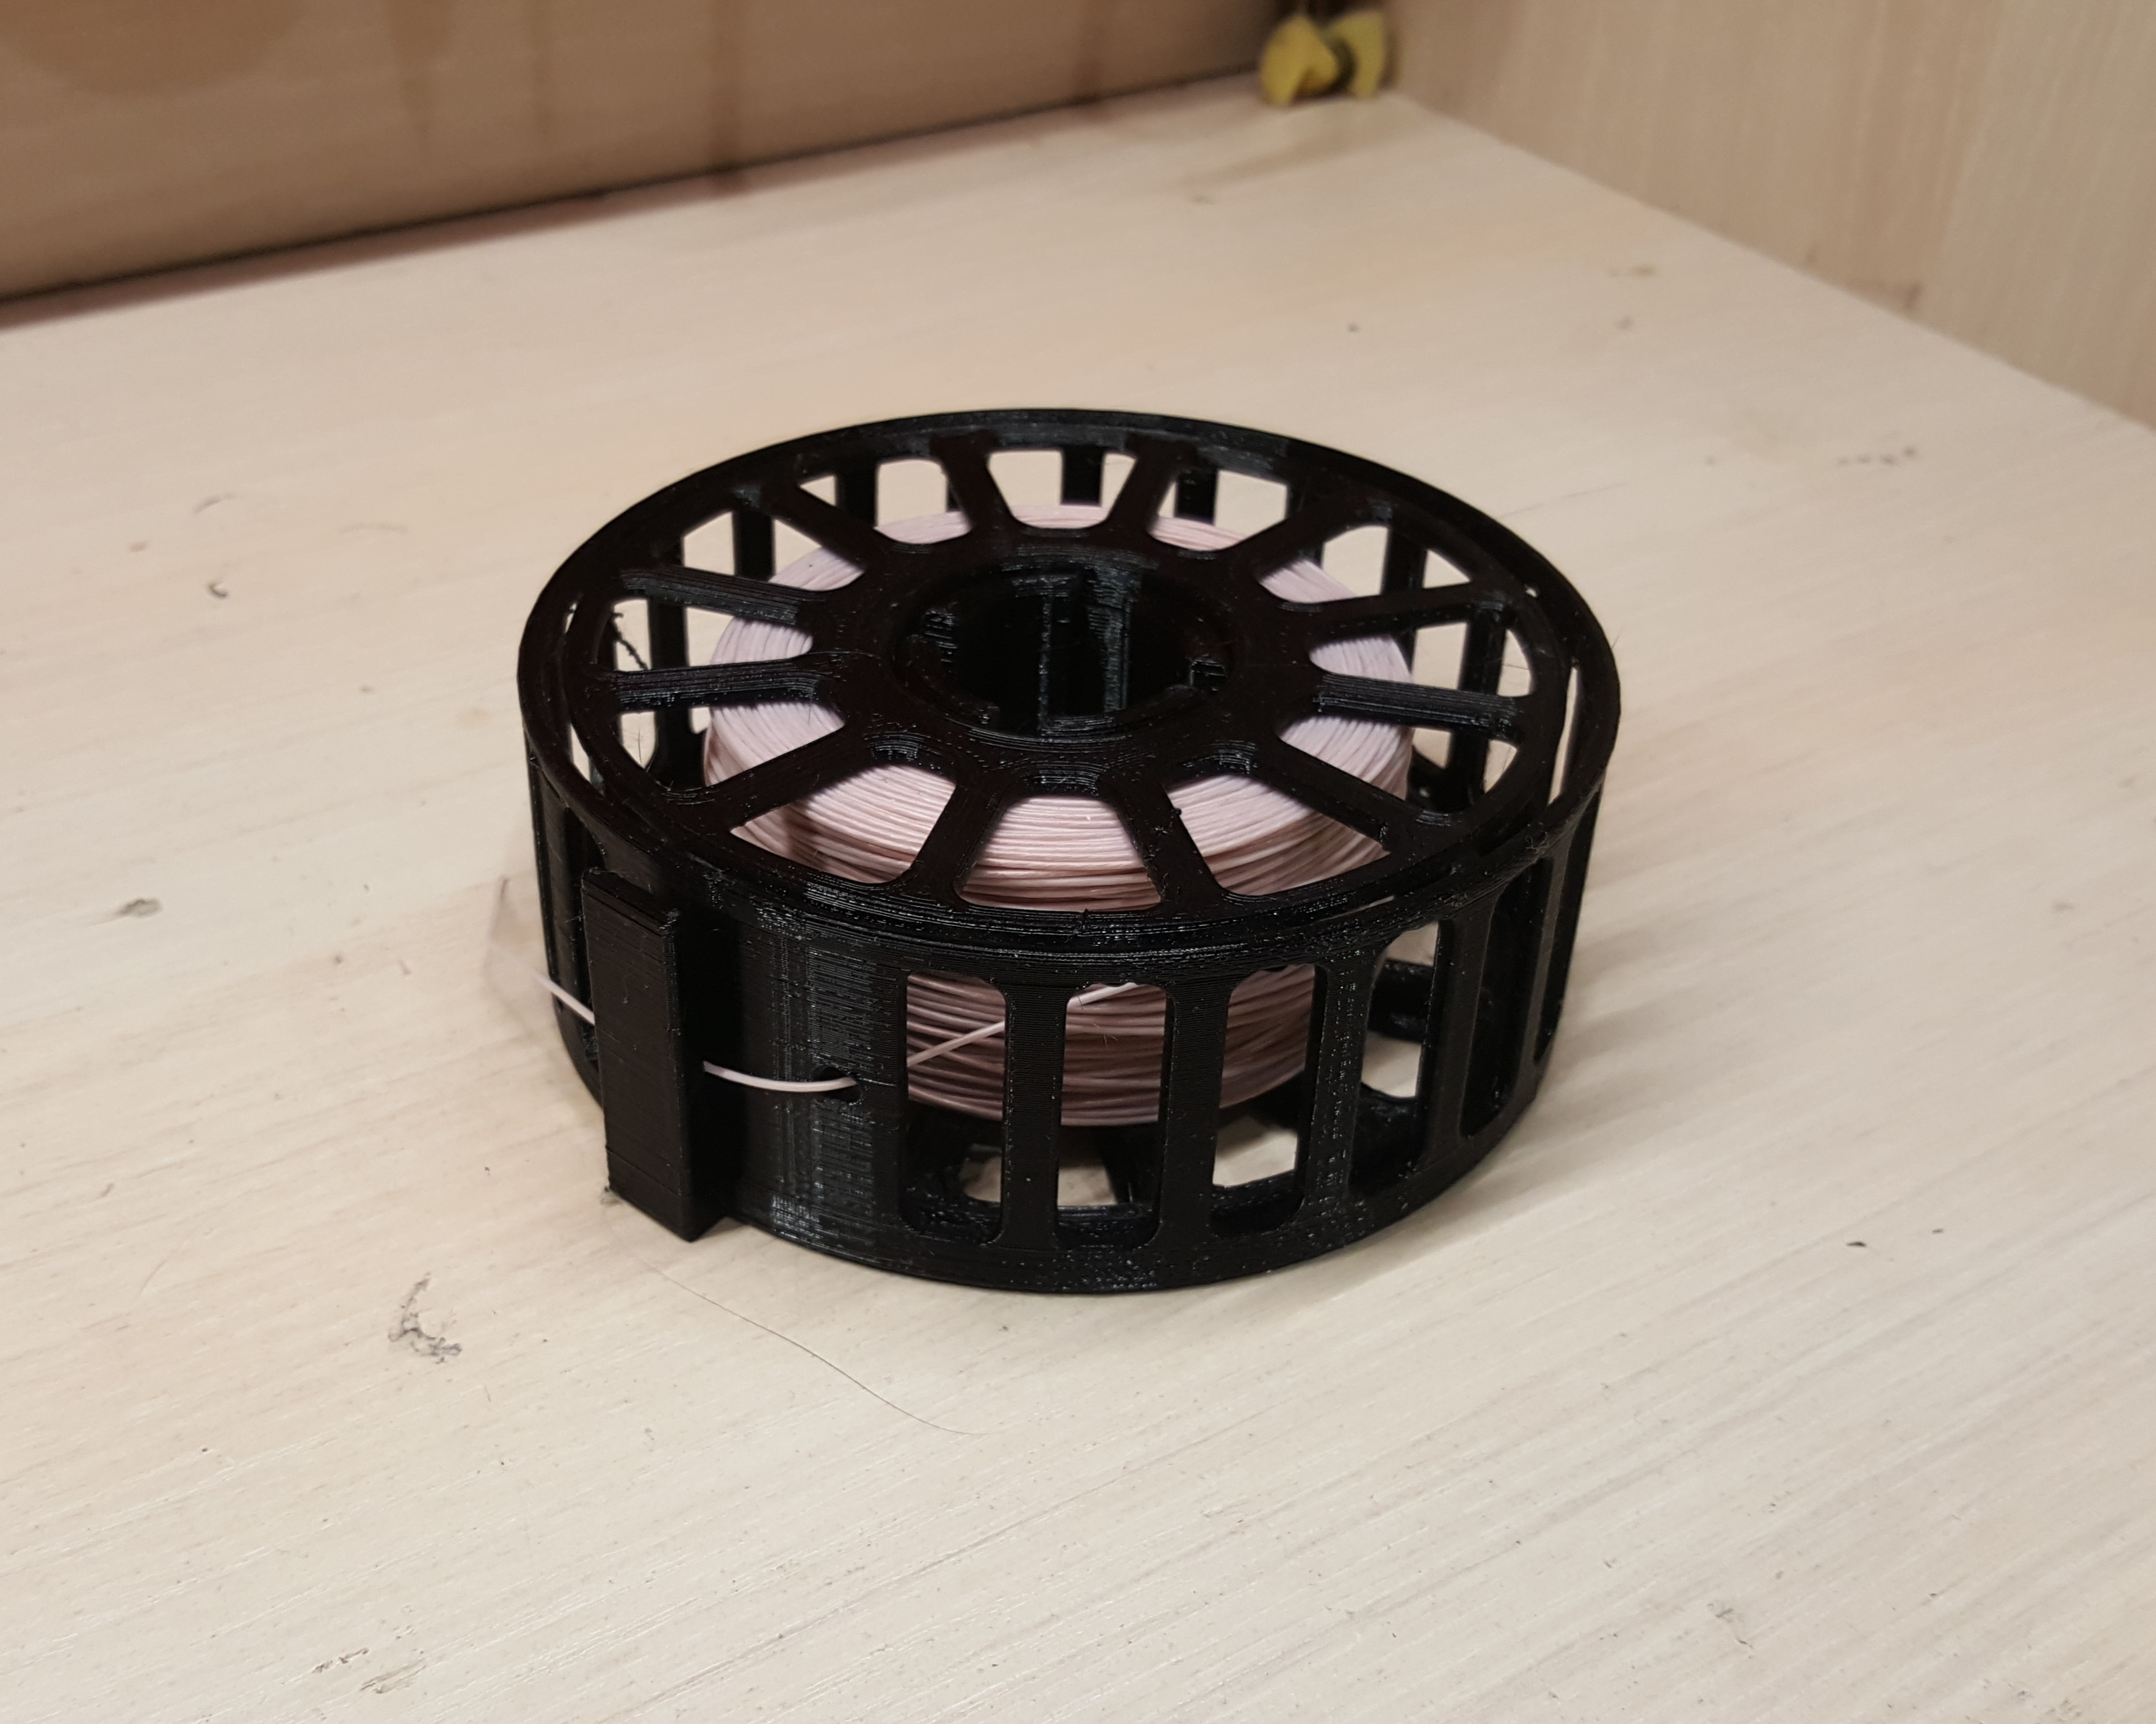 Boxed wire storage spool by mosave - Thingiverse